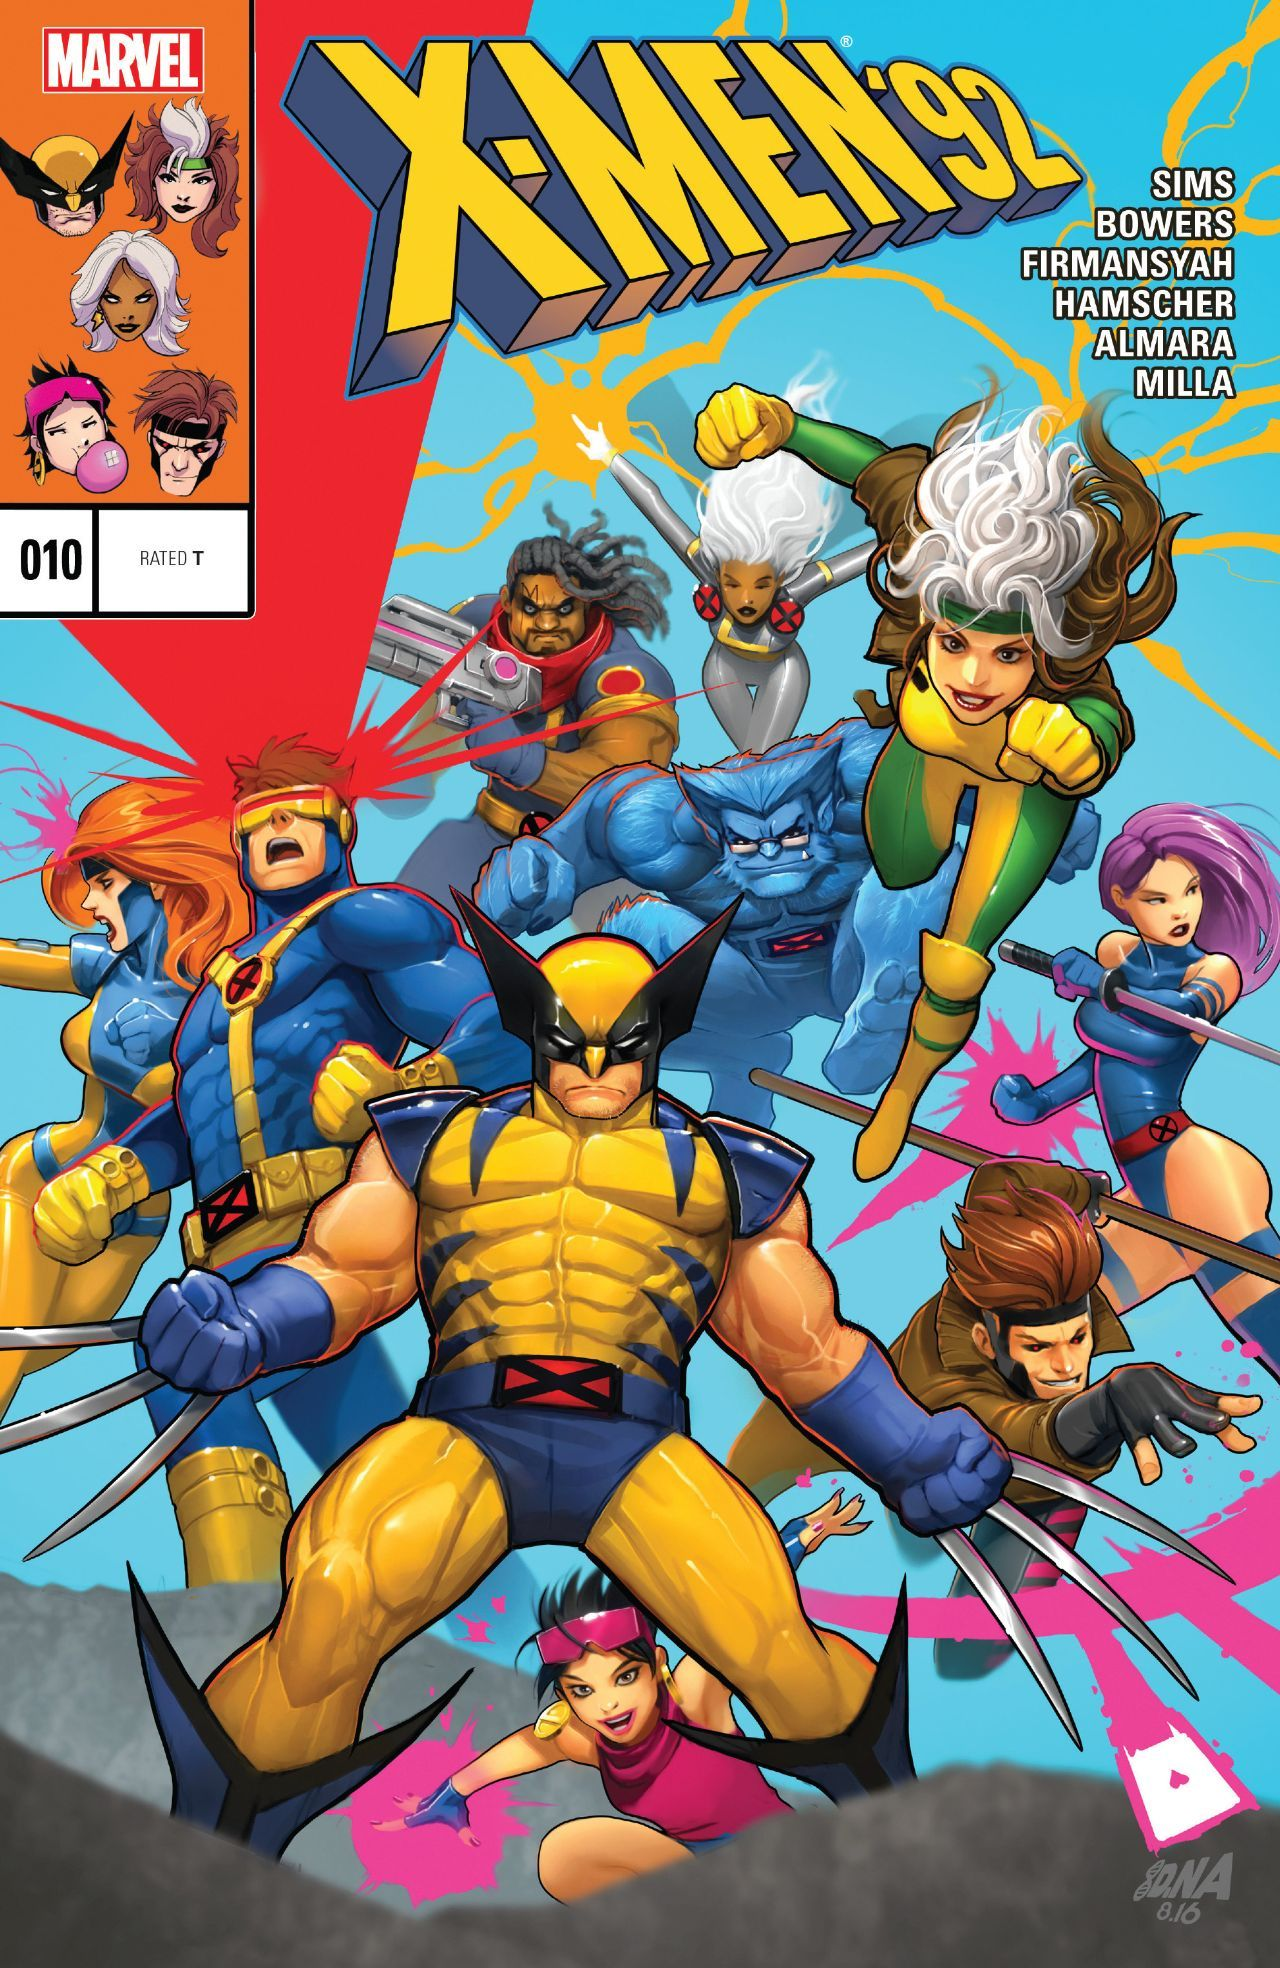 X Men 92 2016 10 Comics By Comixology Marvel Comics Art Marvel Superheroes X Men